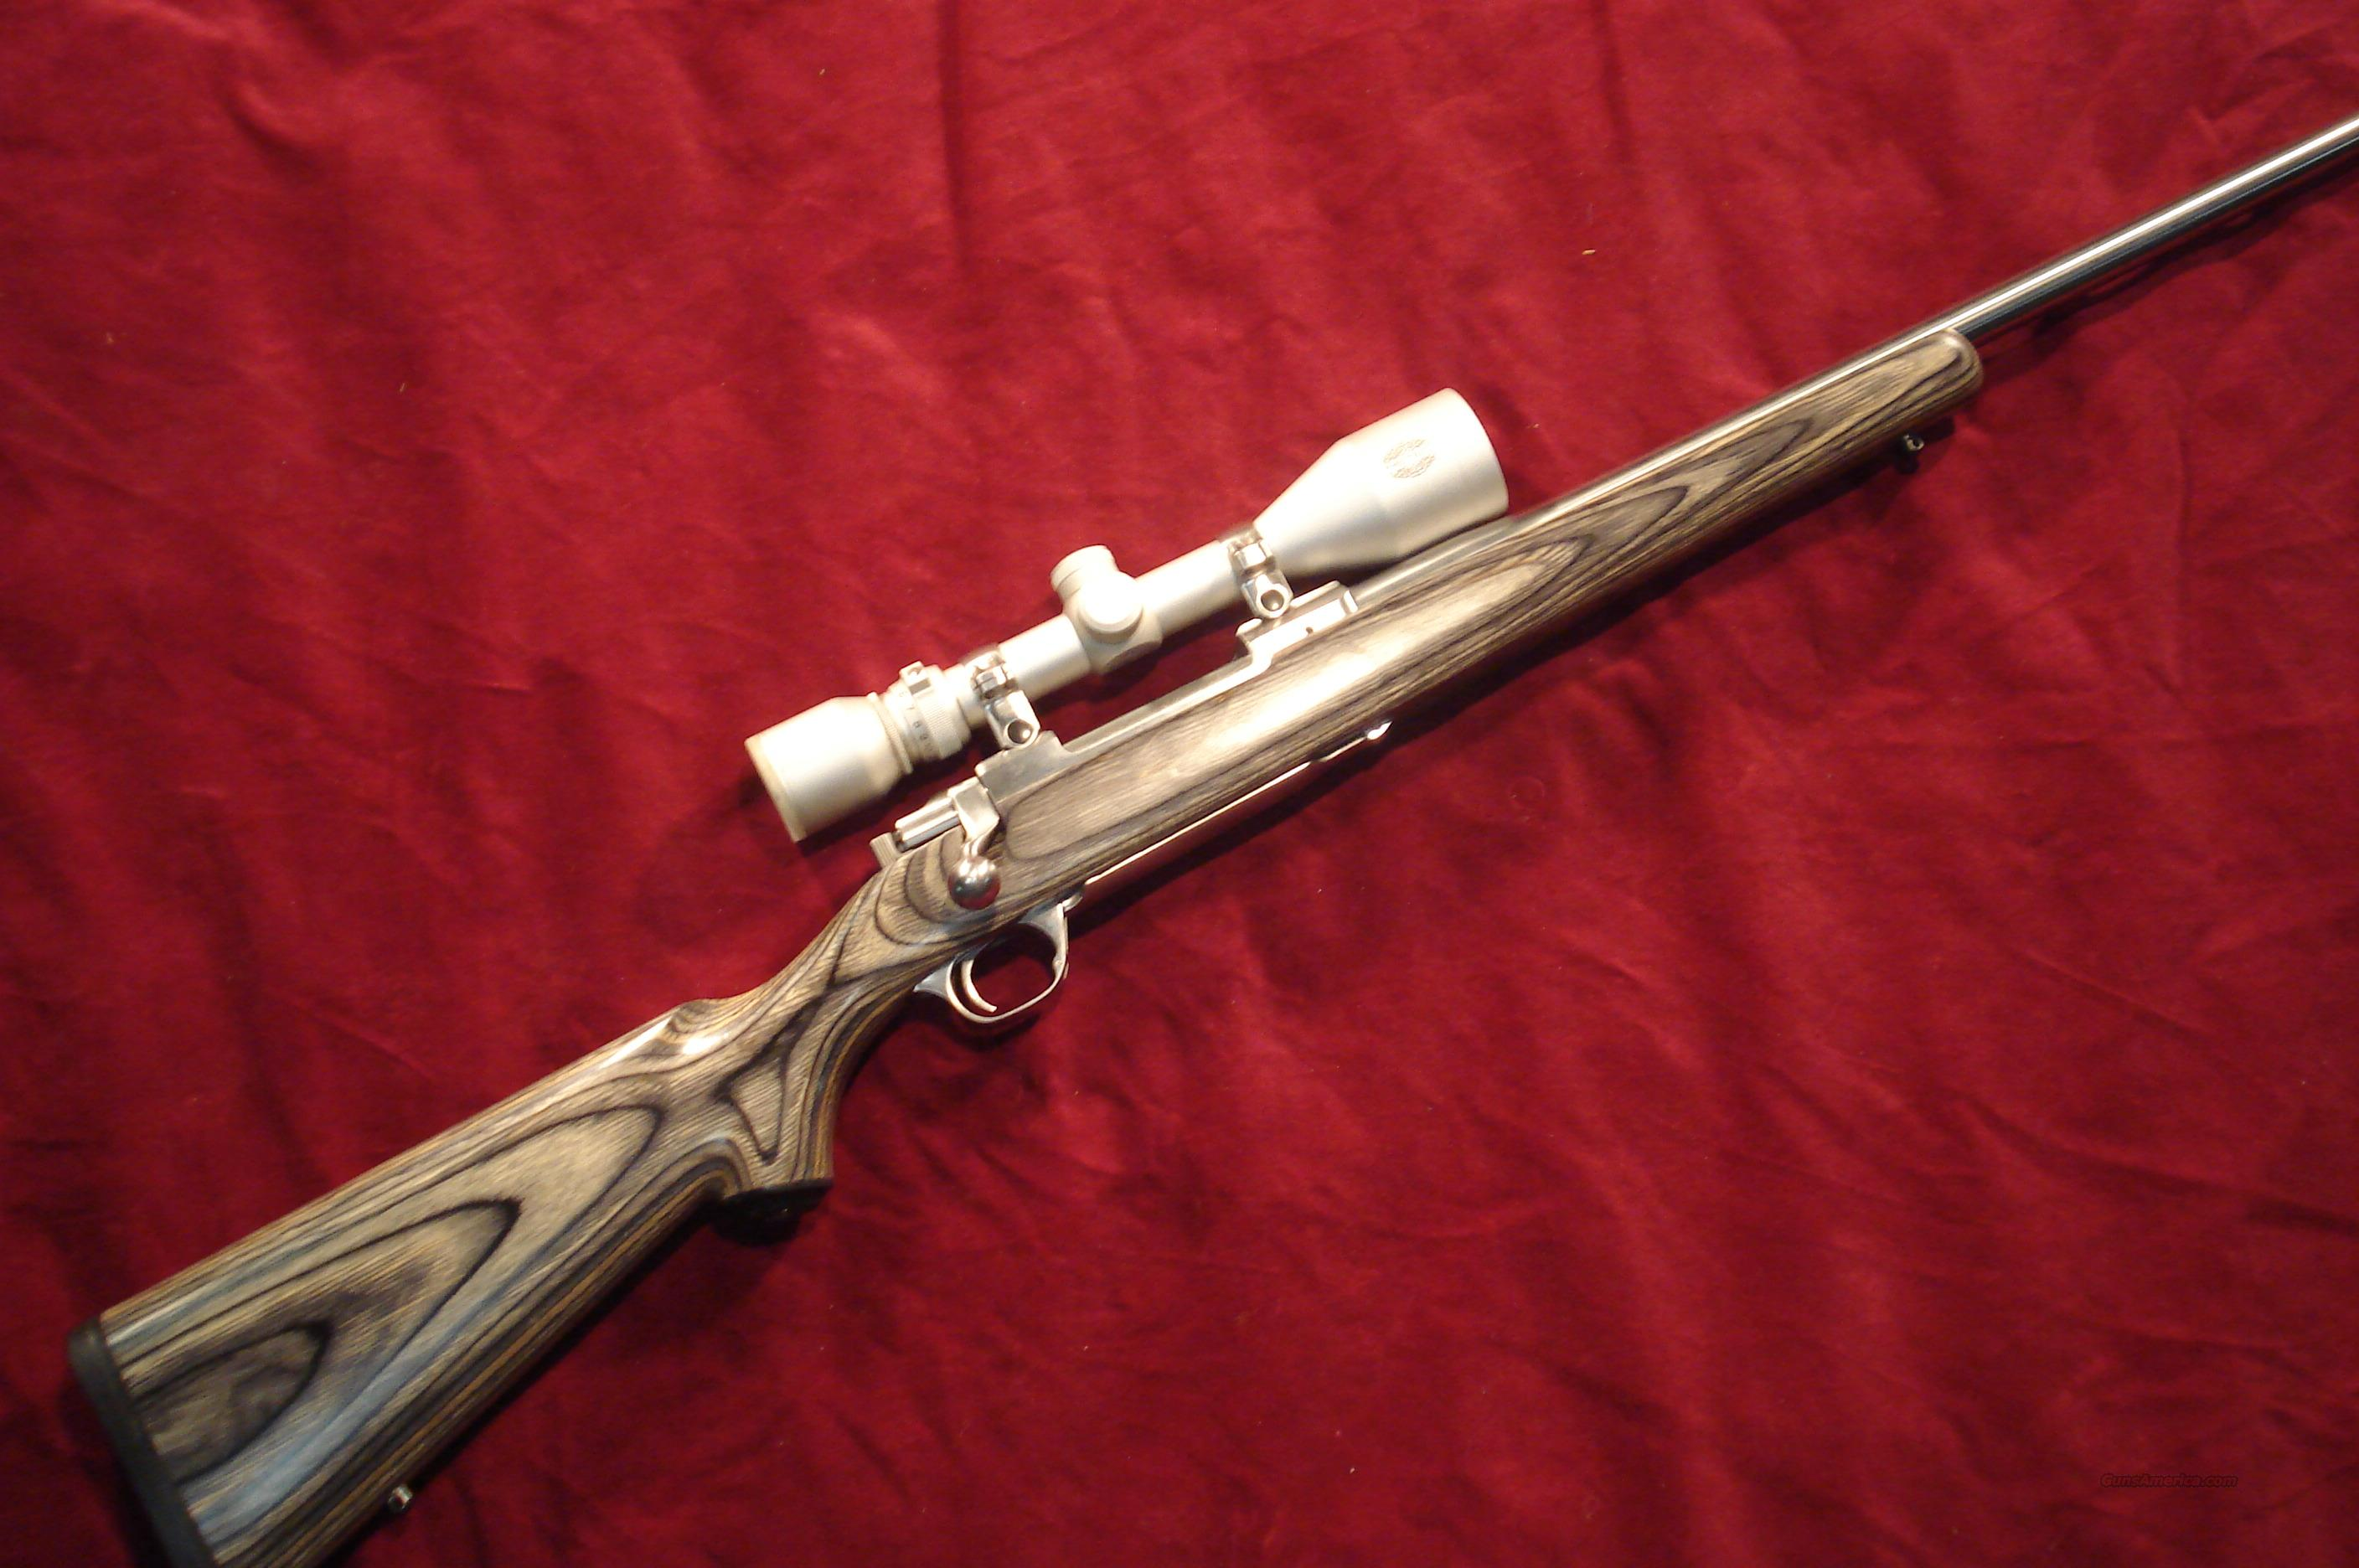 RUGER M77 MKII STAINLESS LAMINATE 3OOWIN MAG W/SCOPE USED  Guns > Rifles > Ruger Rifles > Model 77